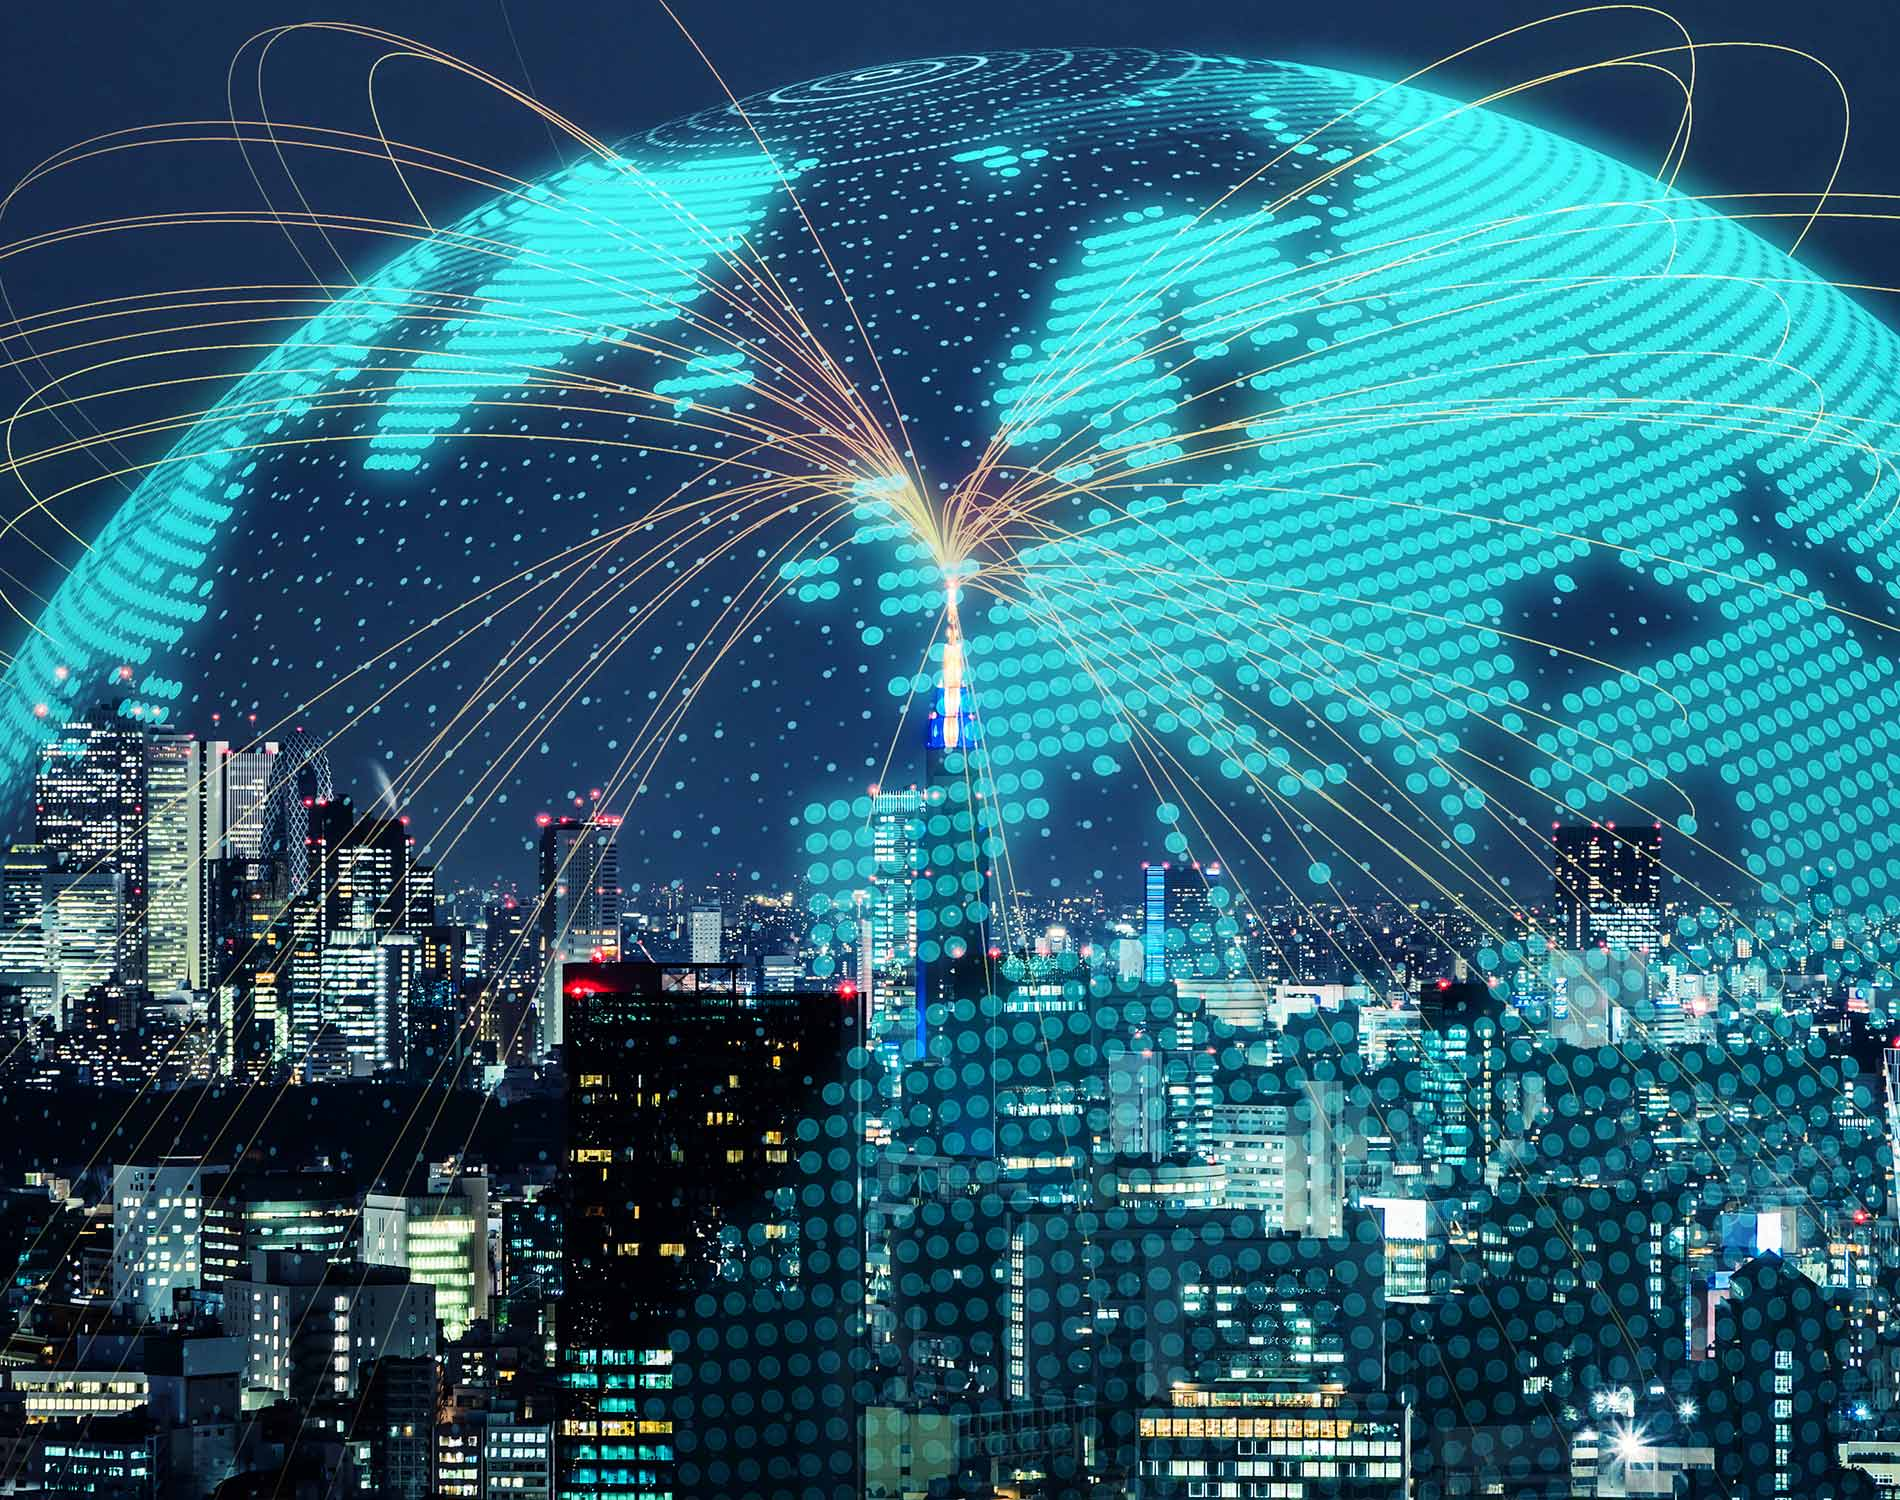 Cityscape with Globe image overlay and network lines.